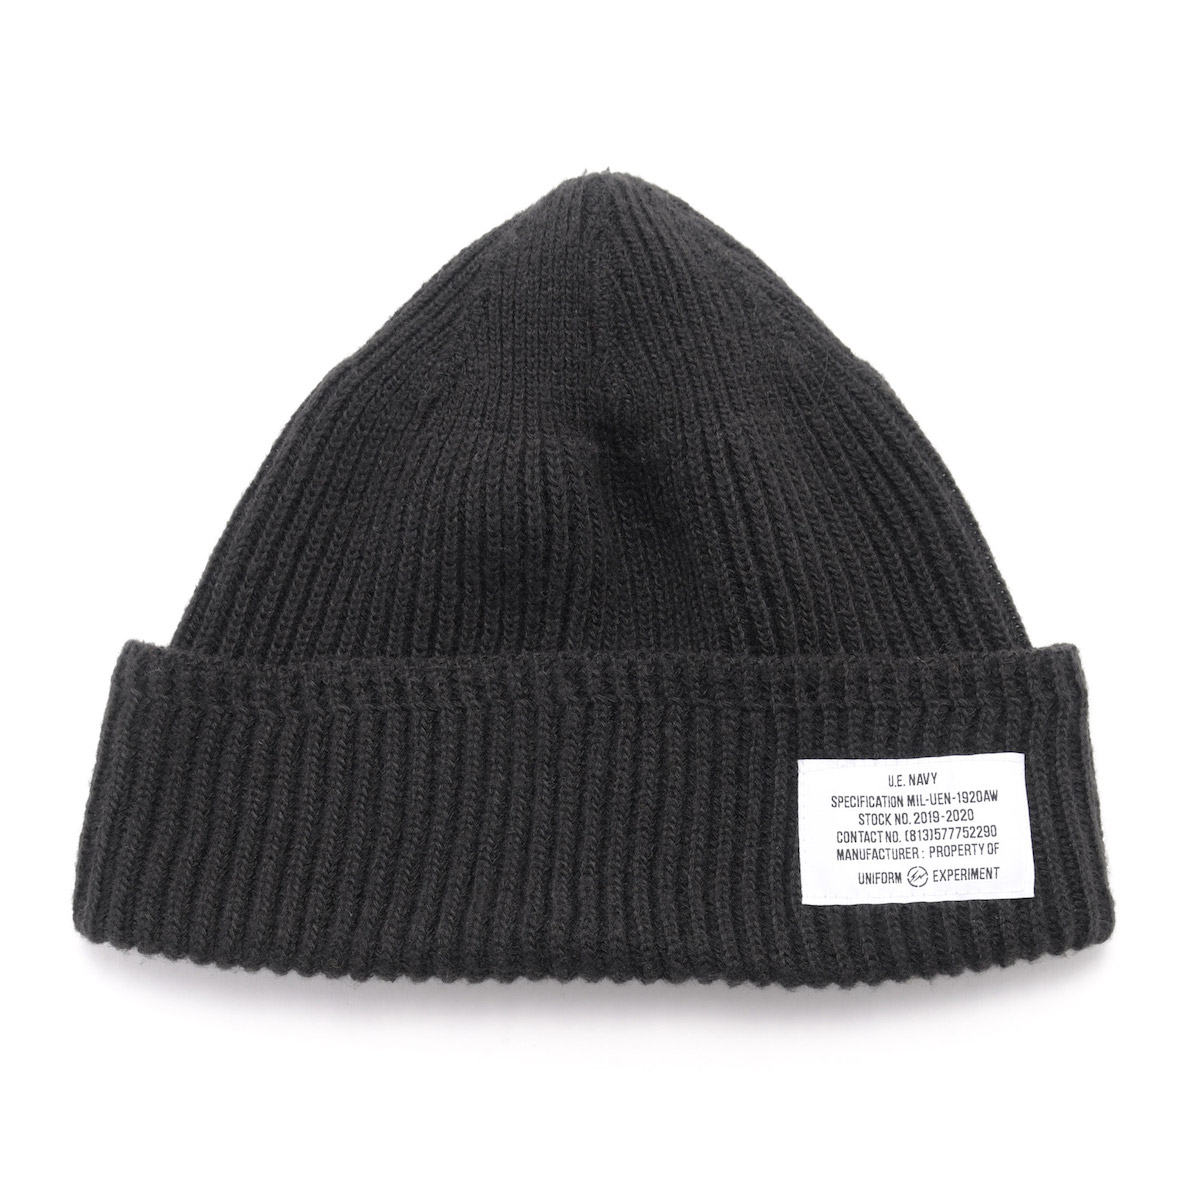 uniform experiment / UEN WATCH CAP (Black)